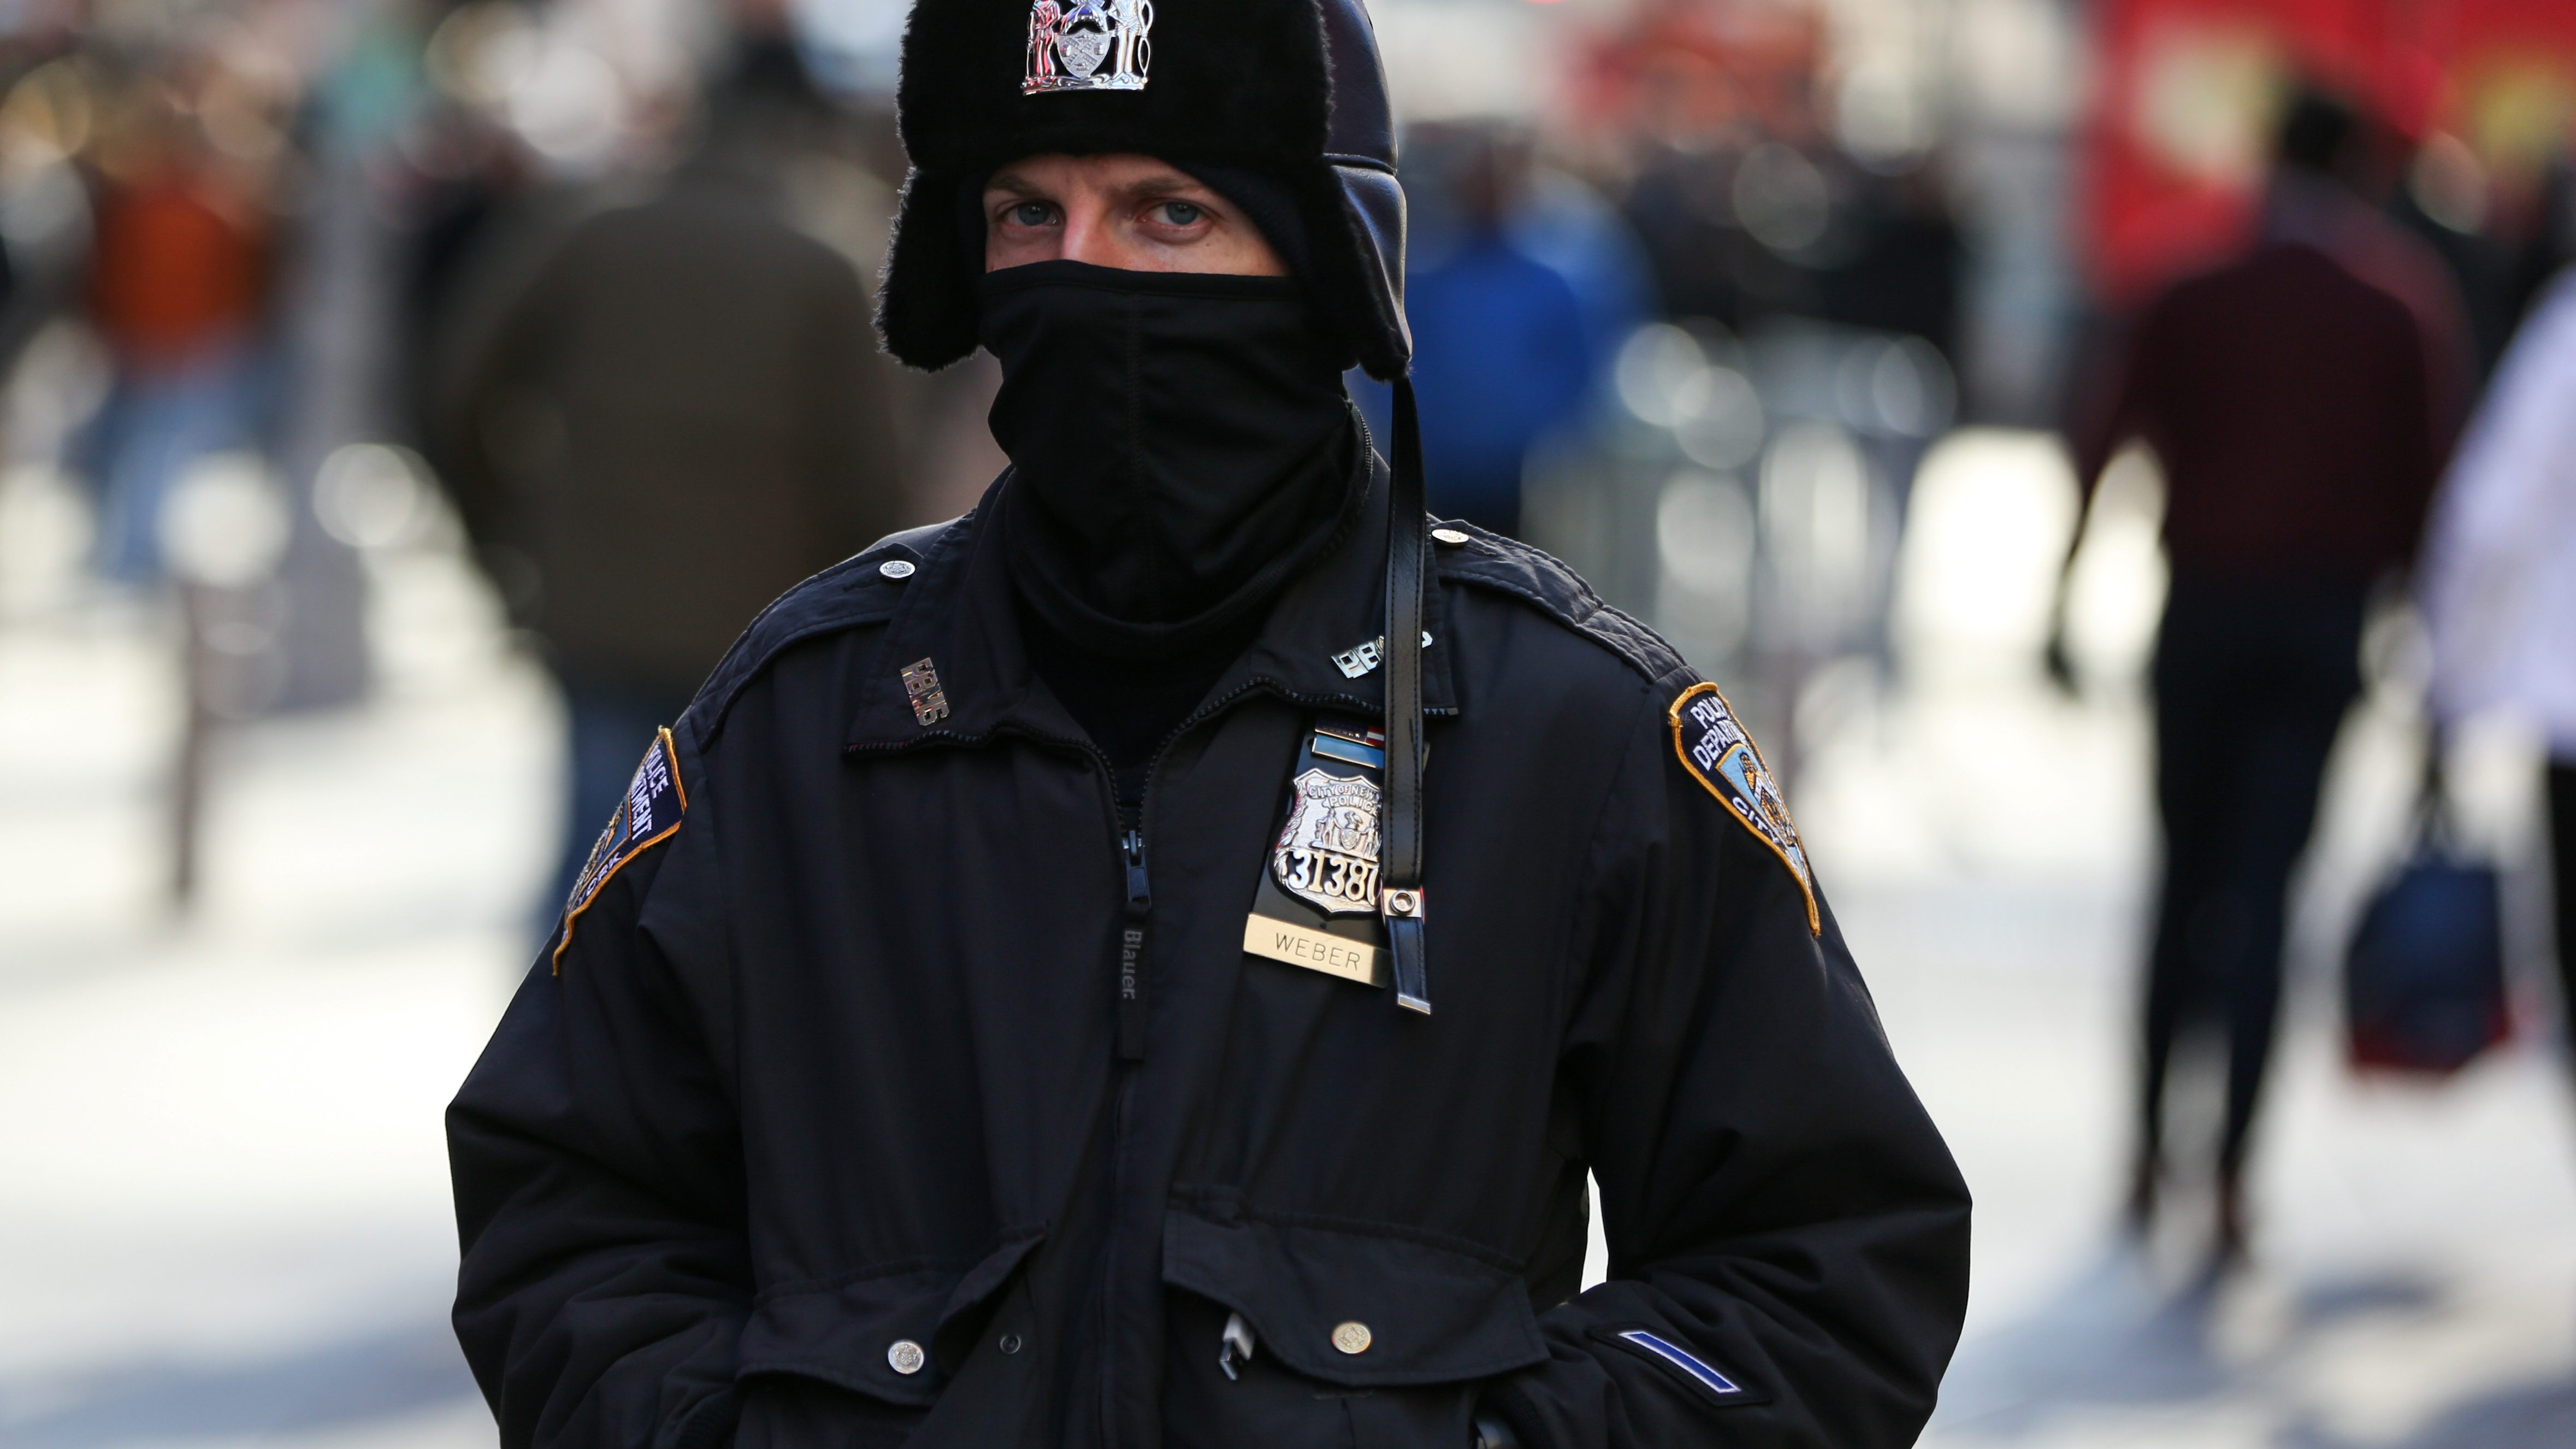 A New York Police Department (NYPD) officer bundles up against the cold temperature as he walks in Times Square in Manhattan, New York, U.S., December 28, 2017. - RC19A6882EE0